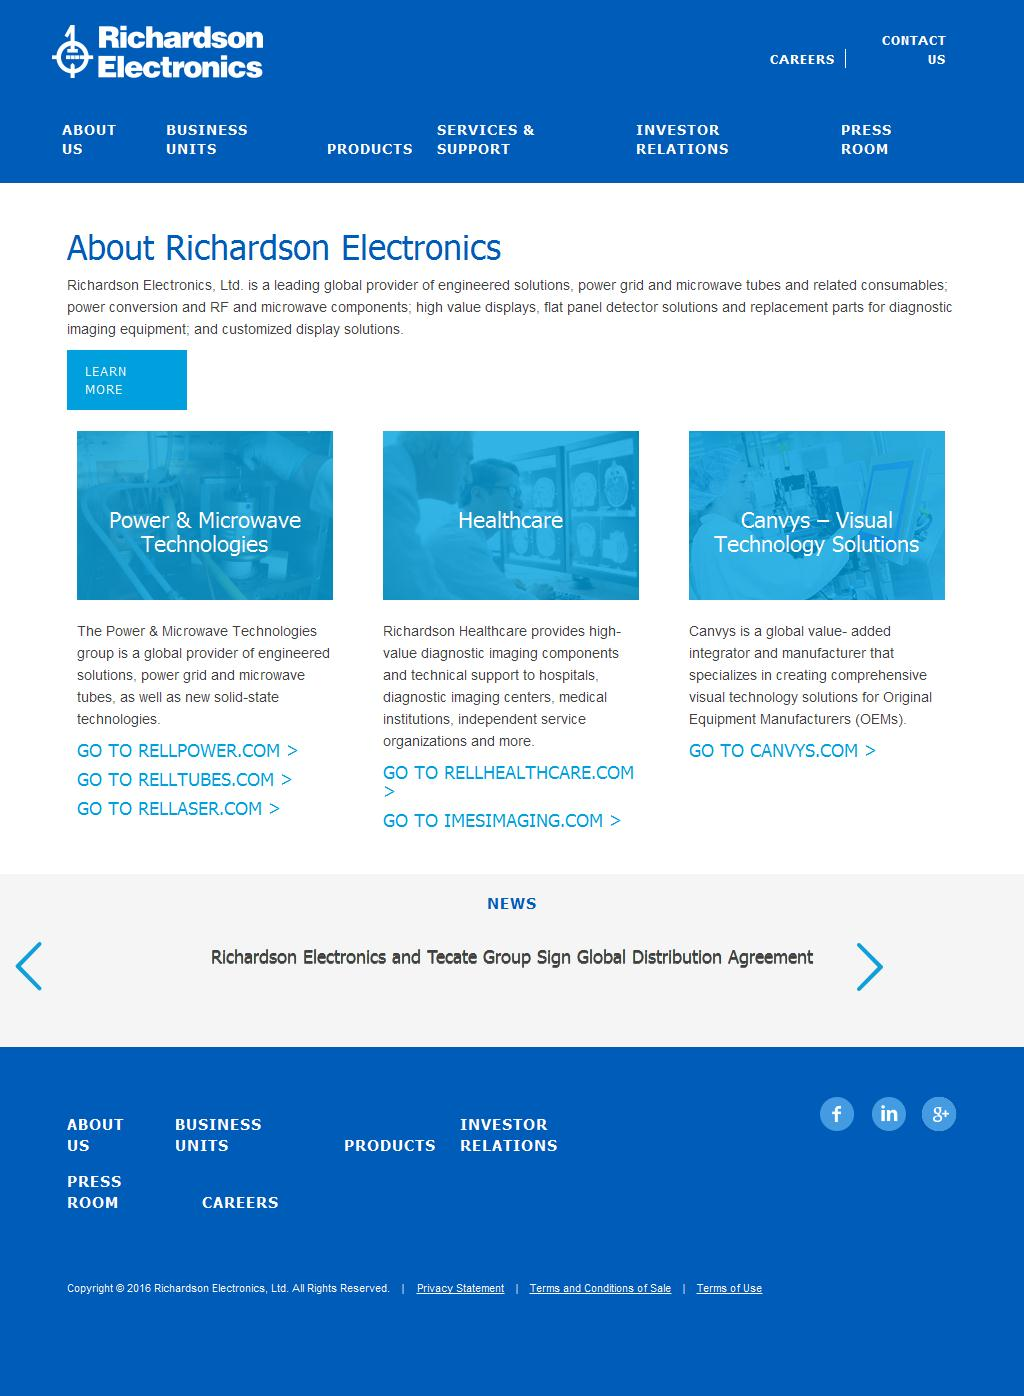 Electronic Components and Display Technology - Richardson Electronics